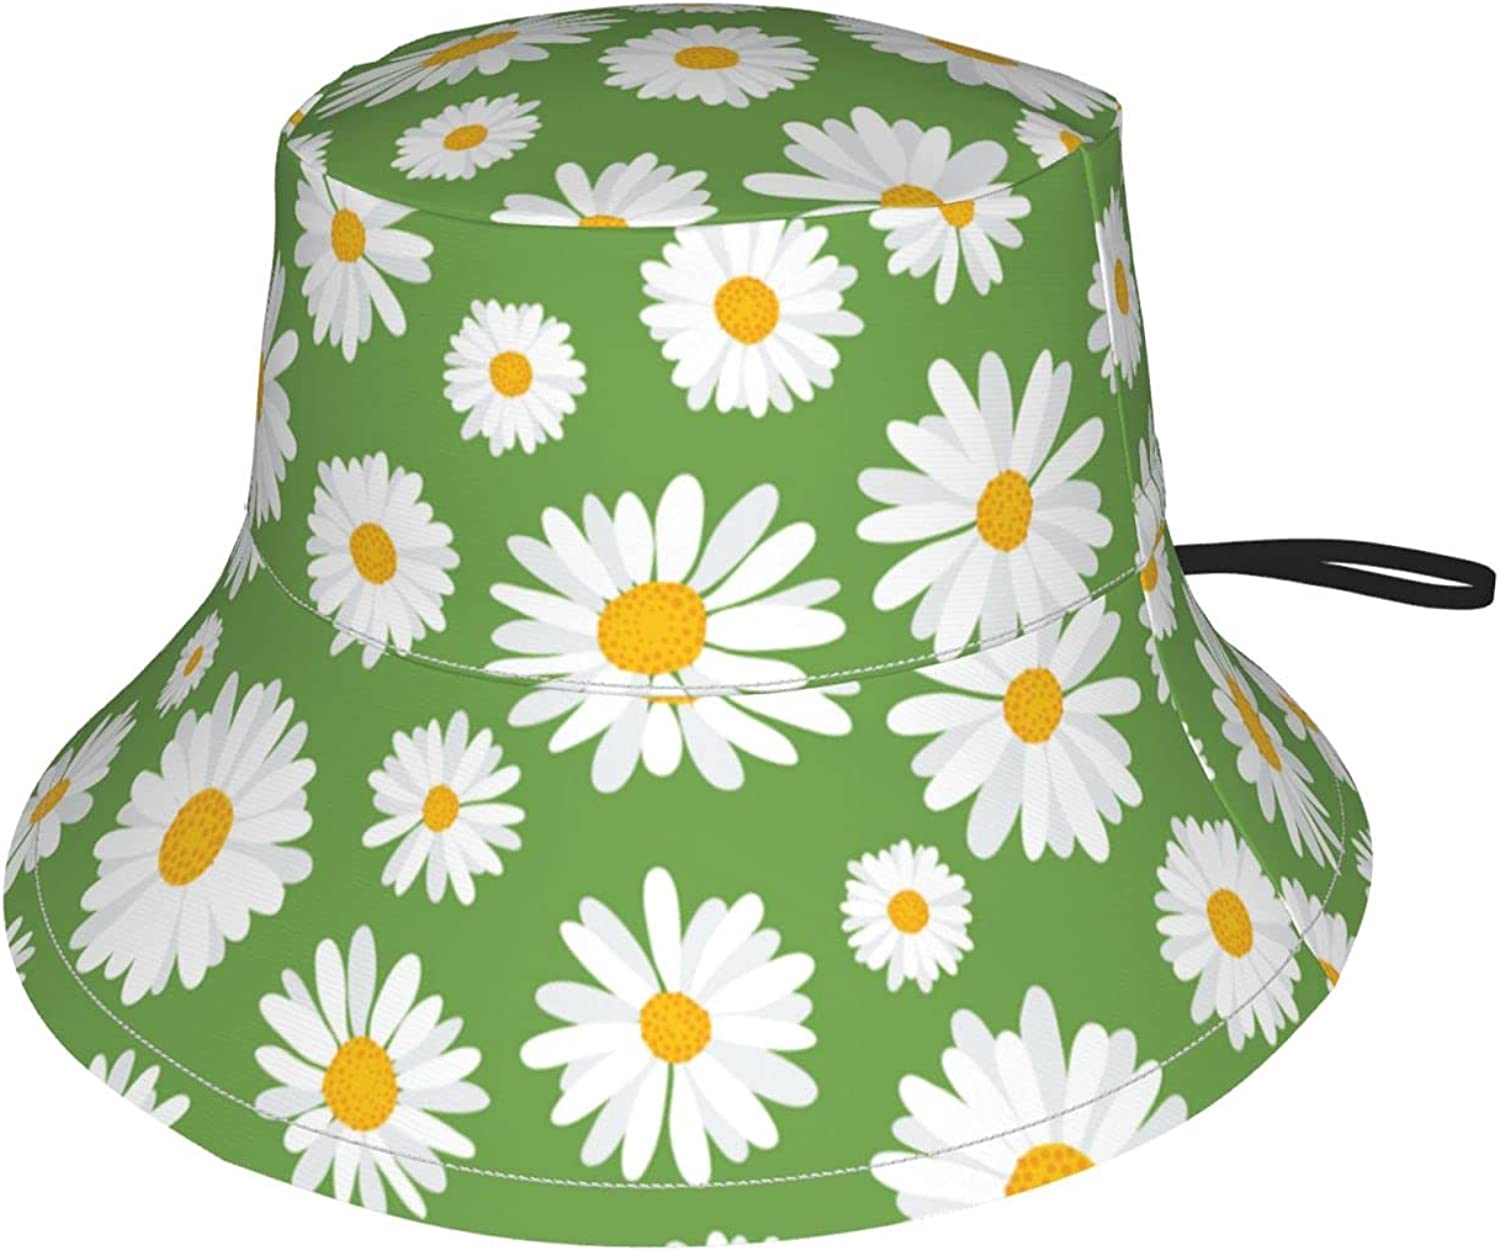 Daisy Kids Bucket Hat Adjustable Toddler Max 49% OFF for Play 40% OFF Cheap Sale Kid Summer